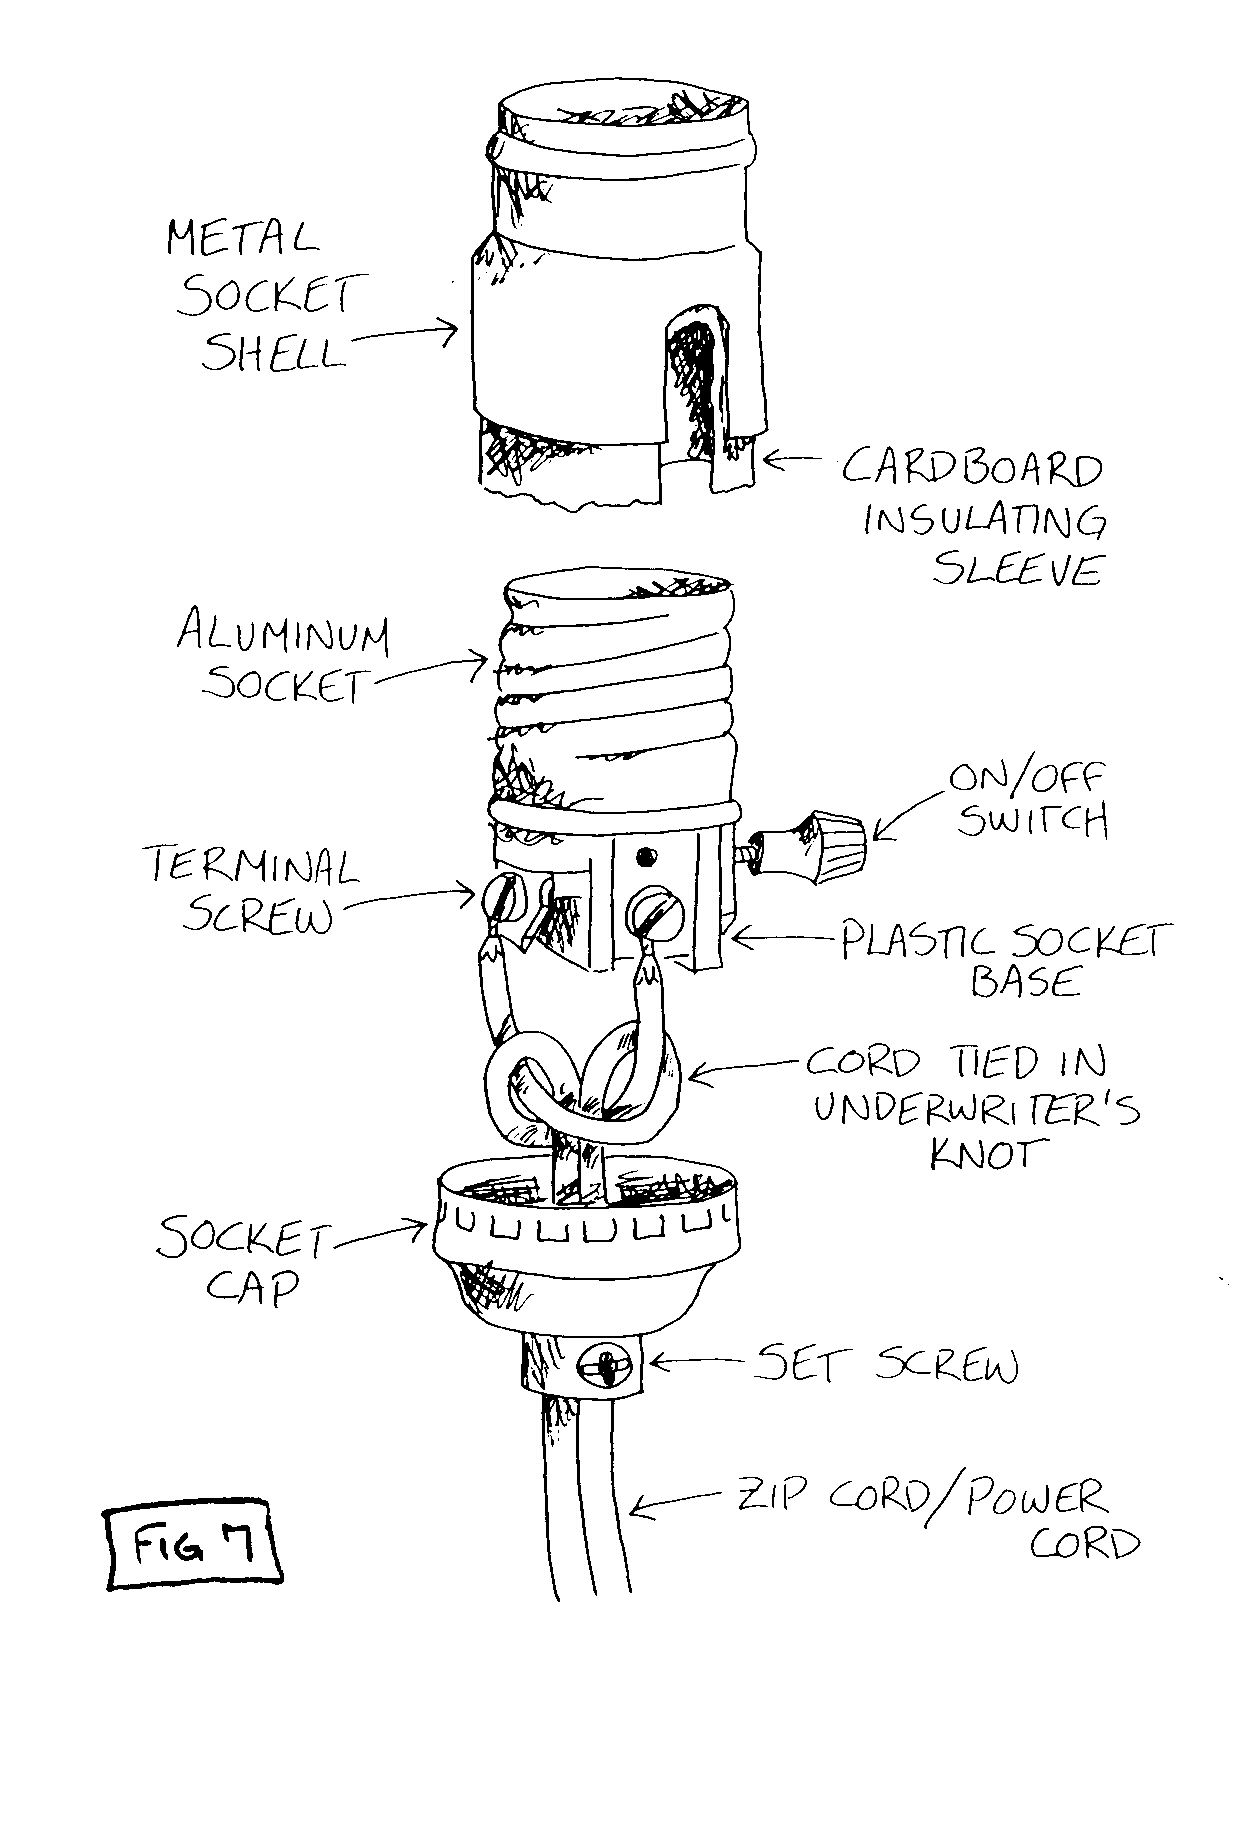 light socket diagram wiring diagrams schema halogen bulb socket street bulb socket diagram [ 1239 x 1822 Pixel ]